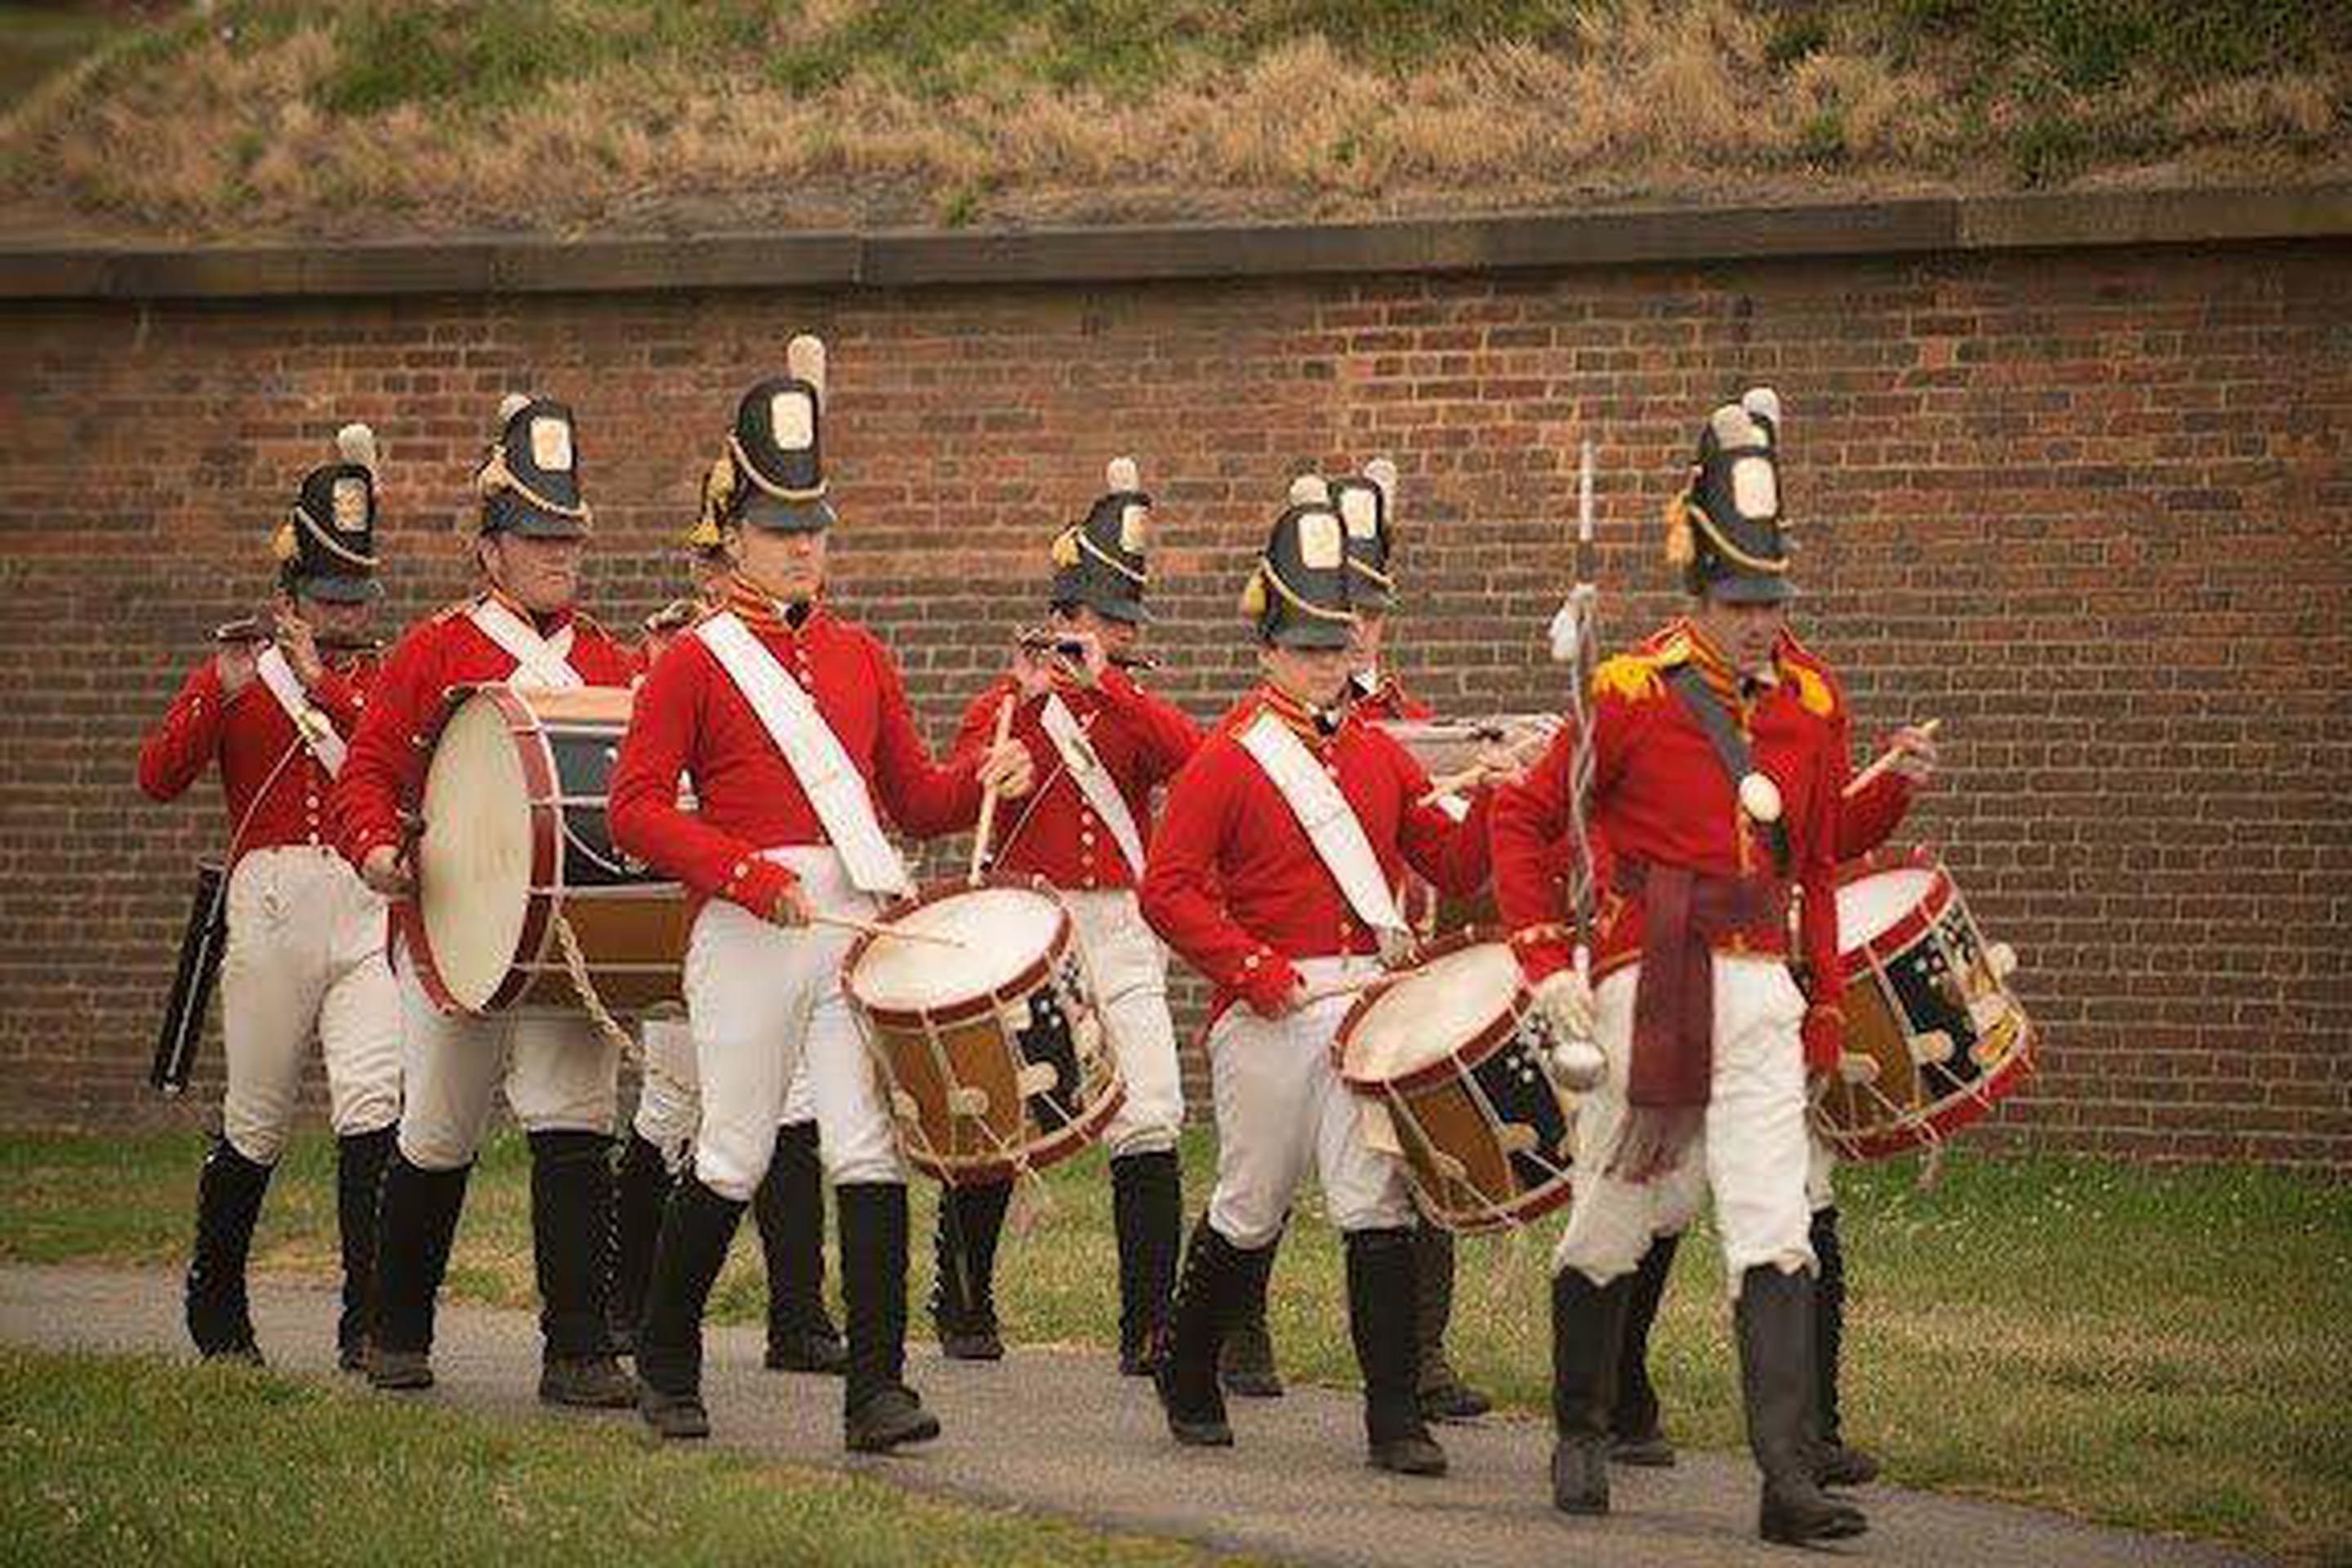 Fort McHenry GuardFife and Drum Corps at Fort McHenry